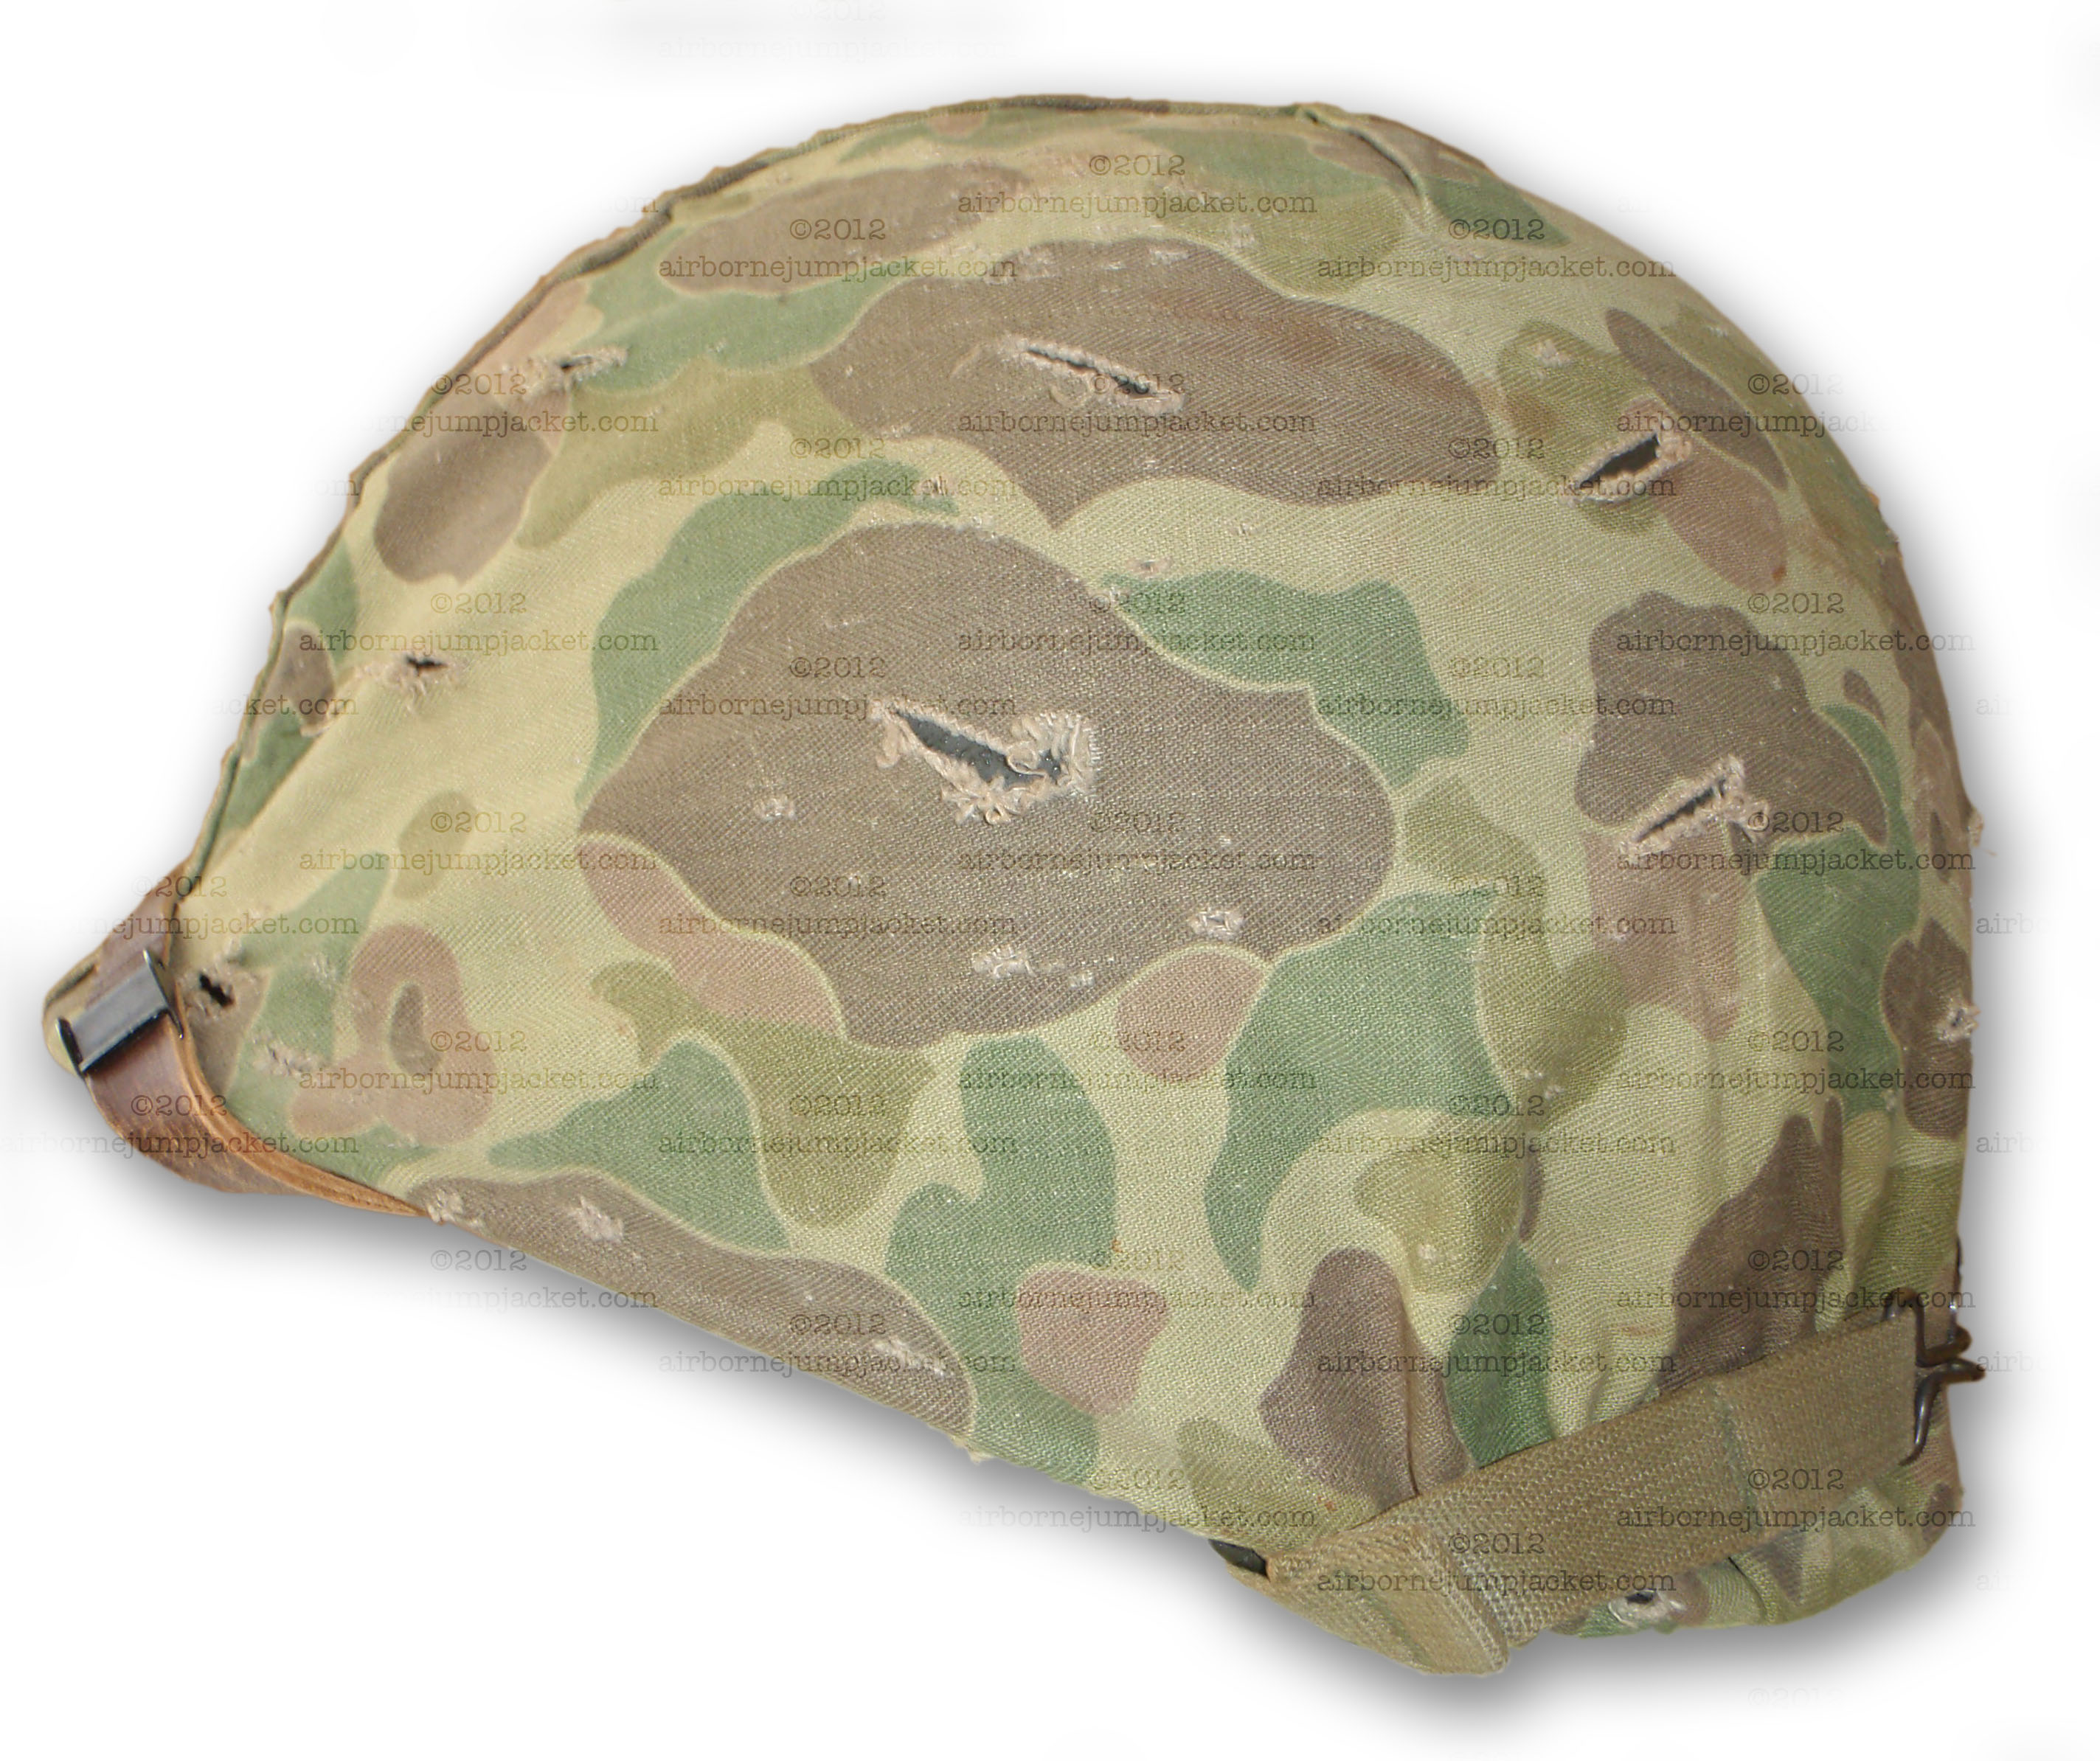 wwii usmc m1 fixed bale helmet with marine camouflage cover